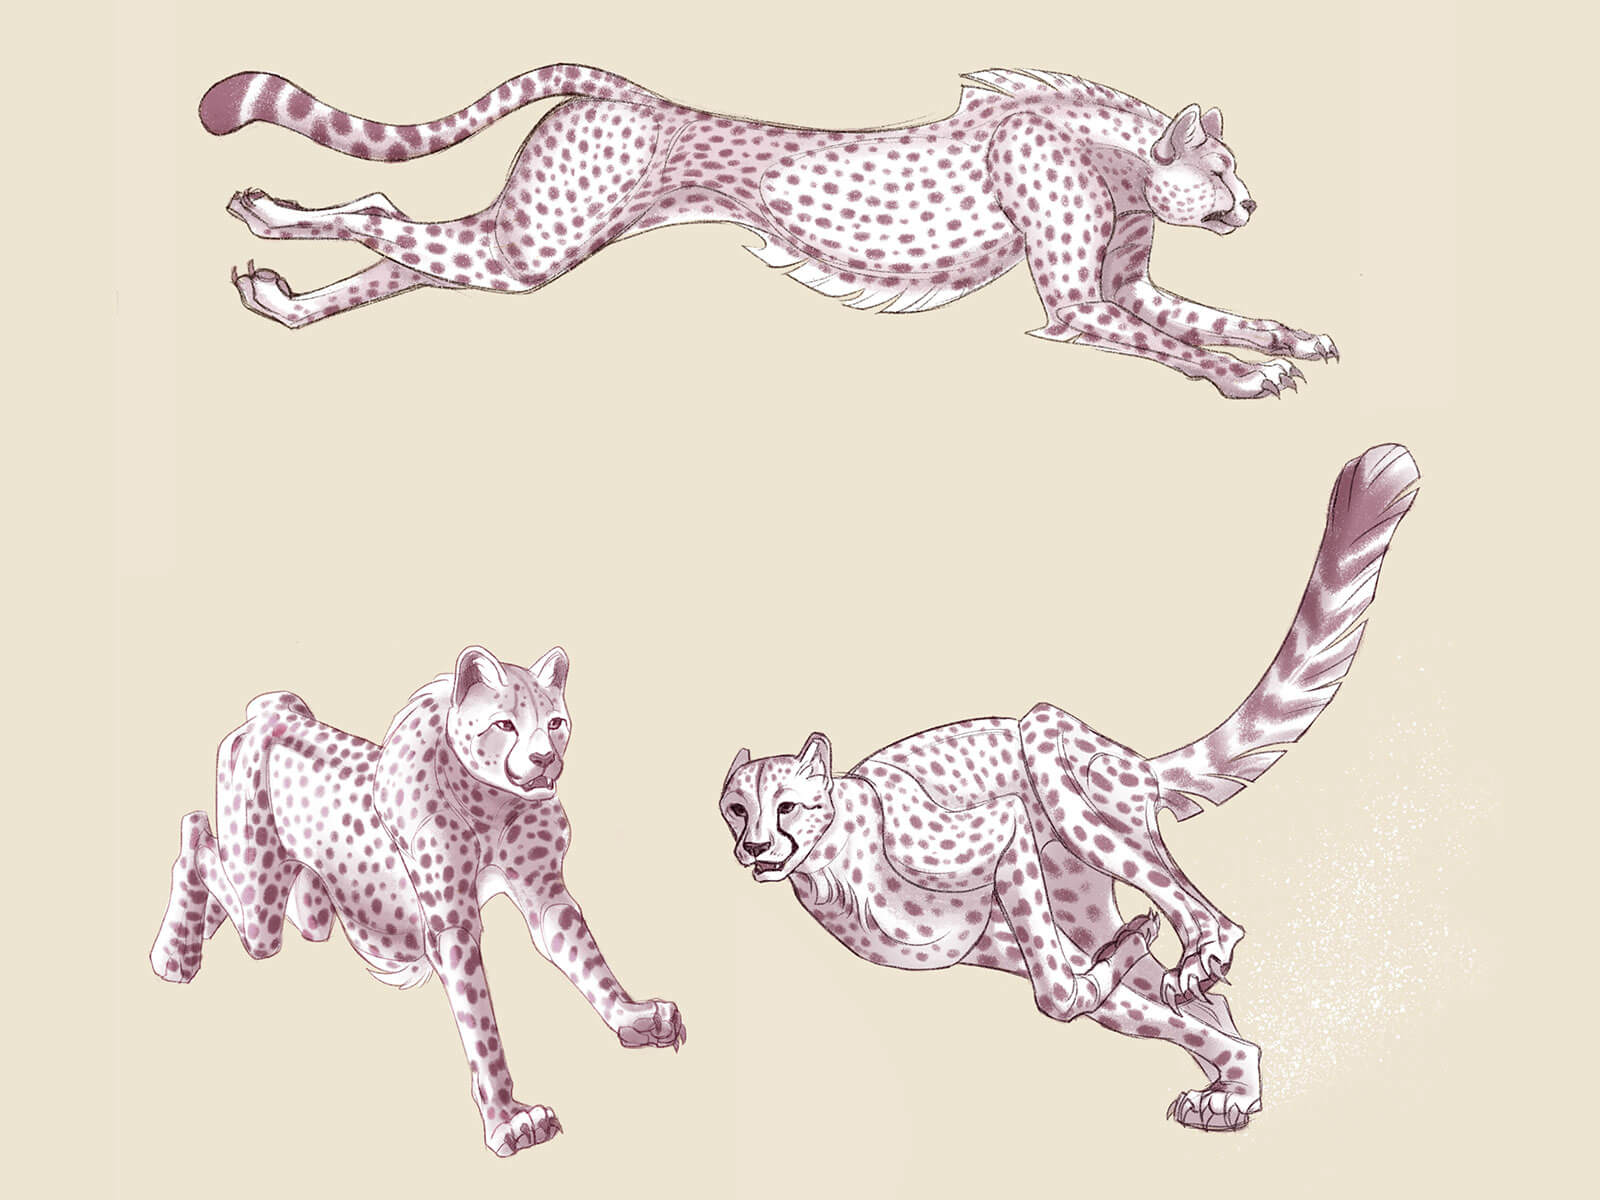 Three different angles of a sepia-toned, cheetah-like quadruped in mid-sprint.